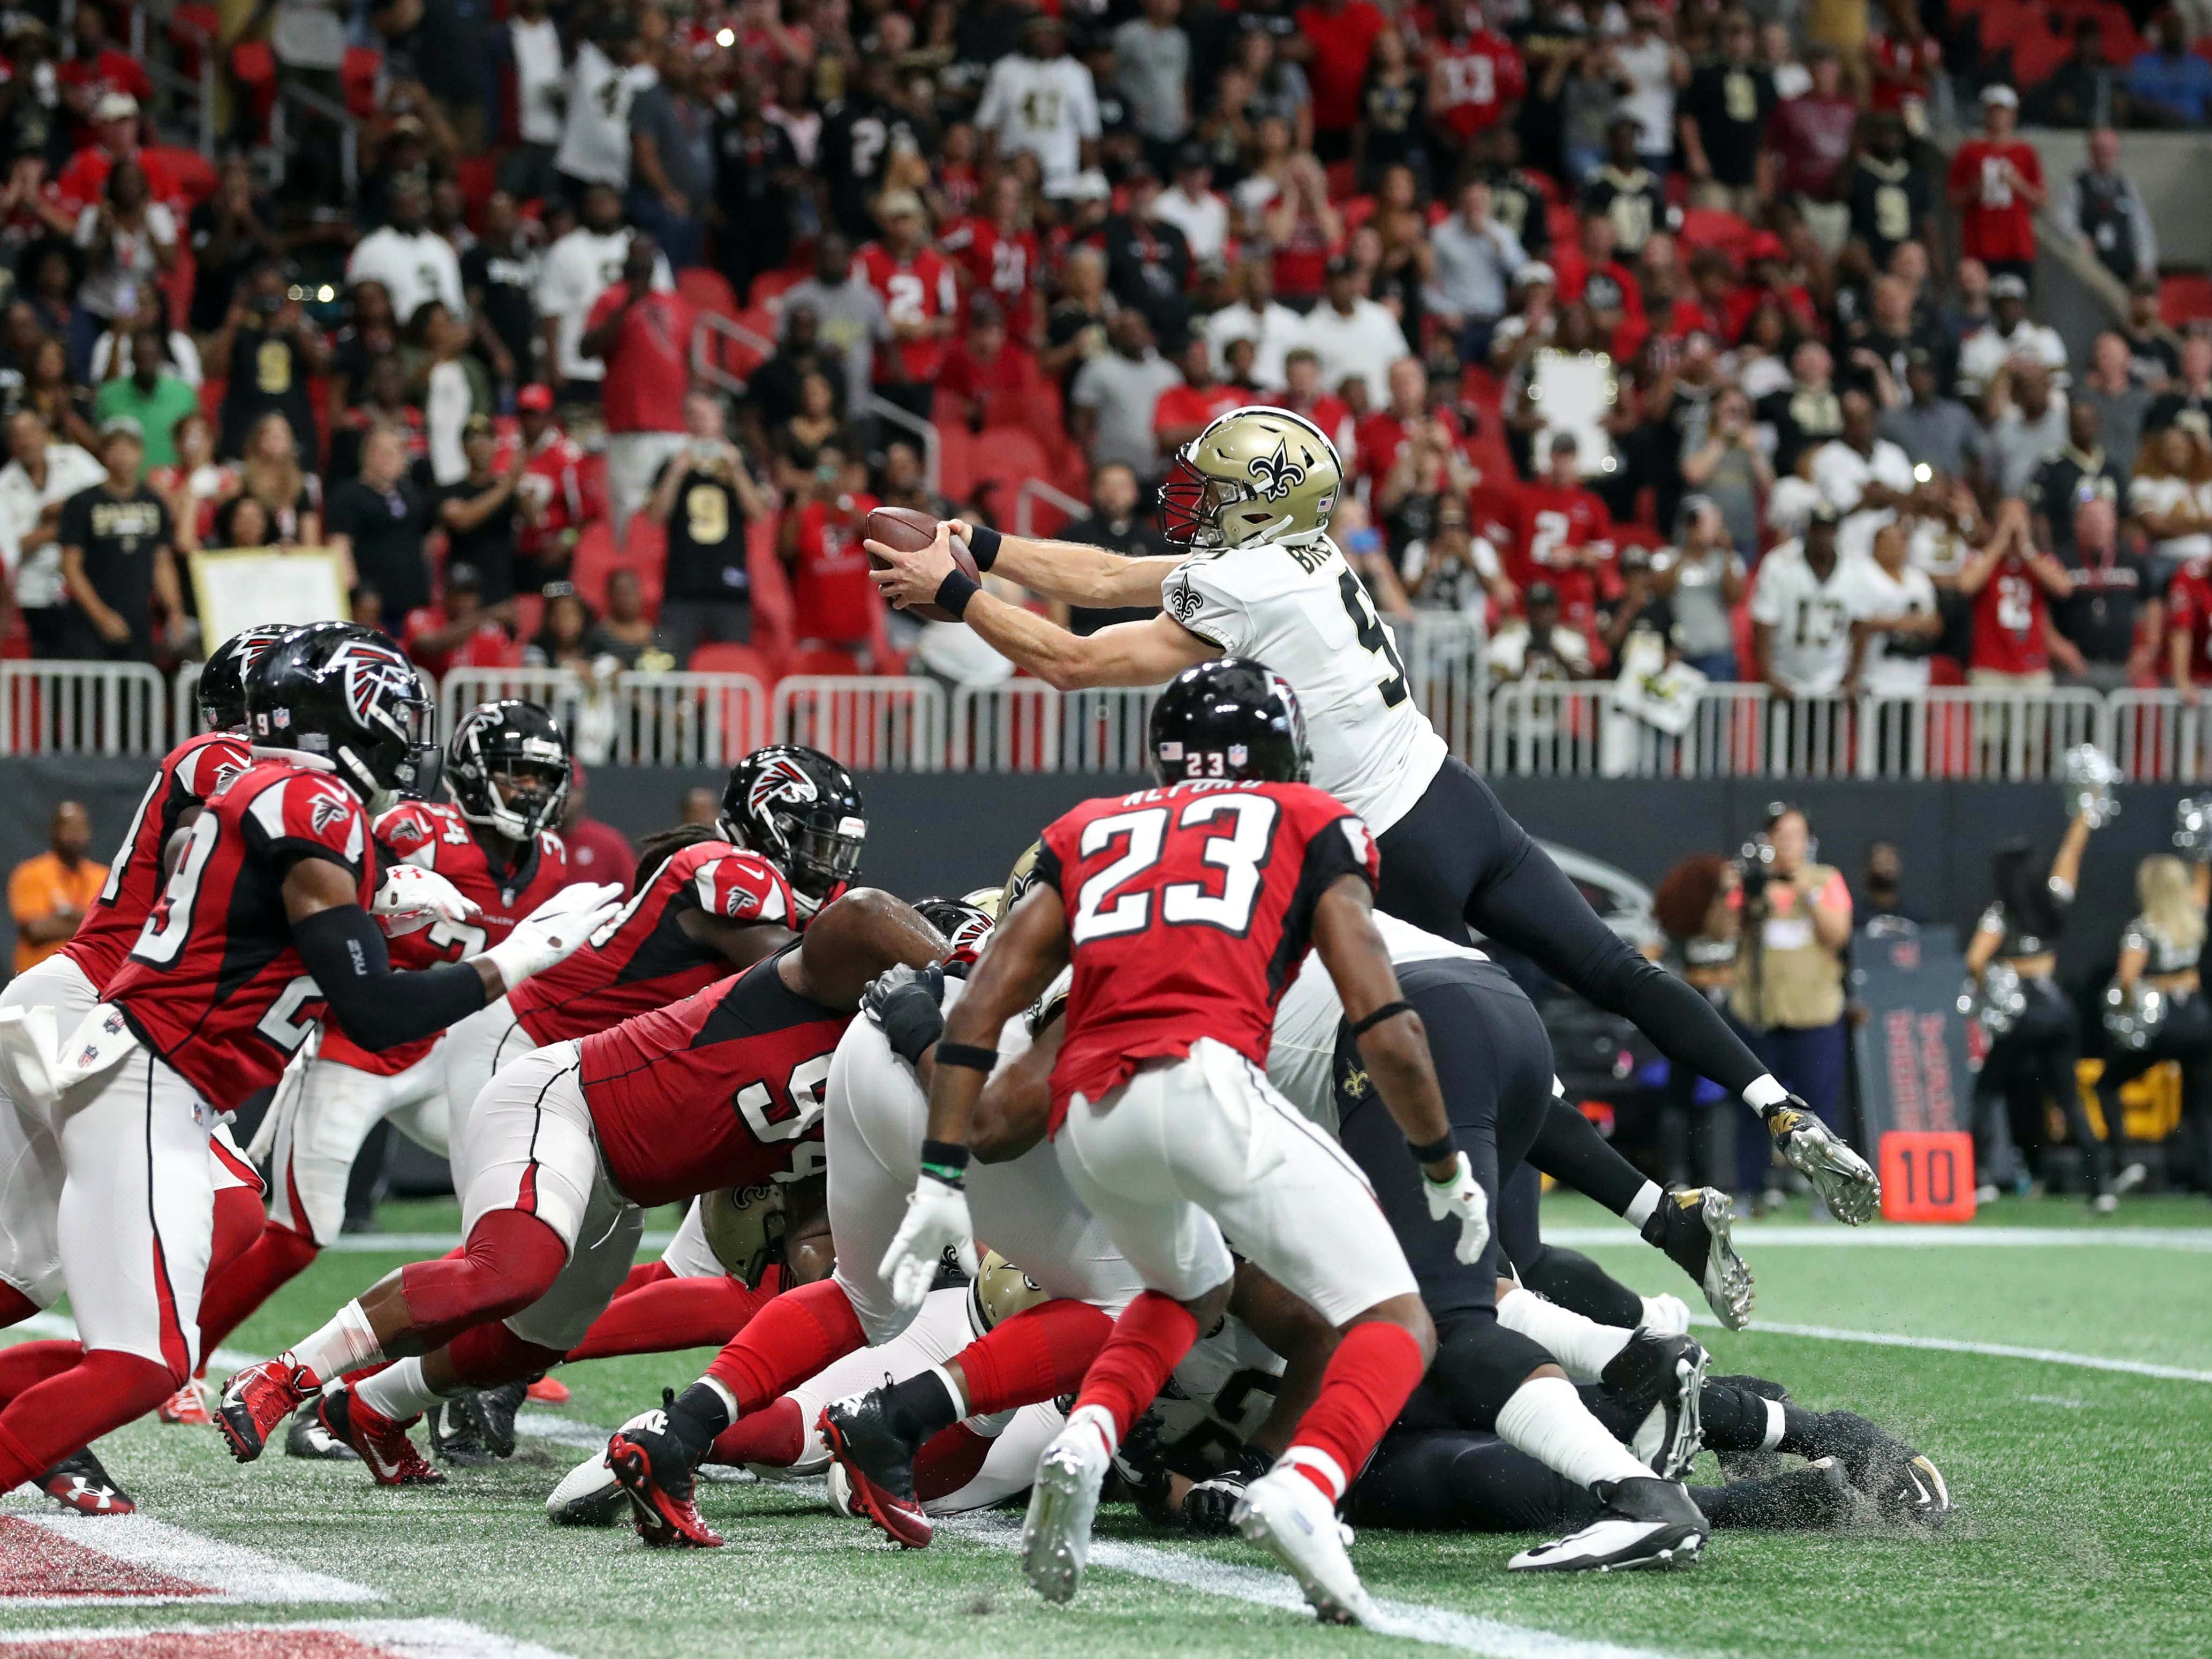 6. Falcons (9): Atlanta on pace to come up one play short against every quality opponent ... pretty much the story of the Dan Quinn-Matt Ryan tenure.